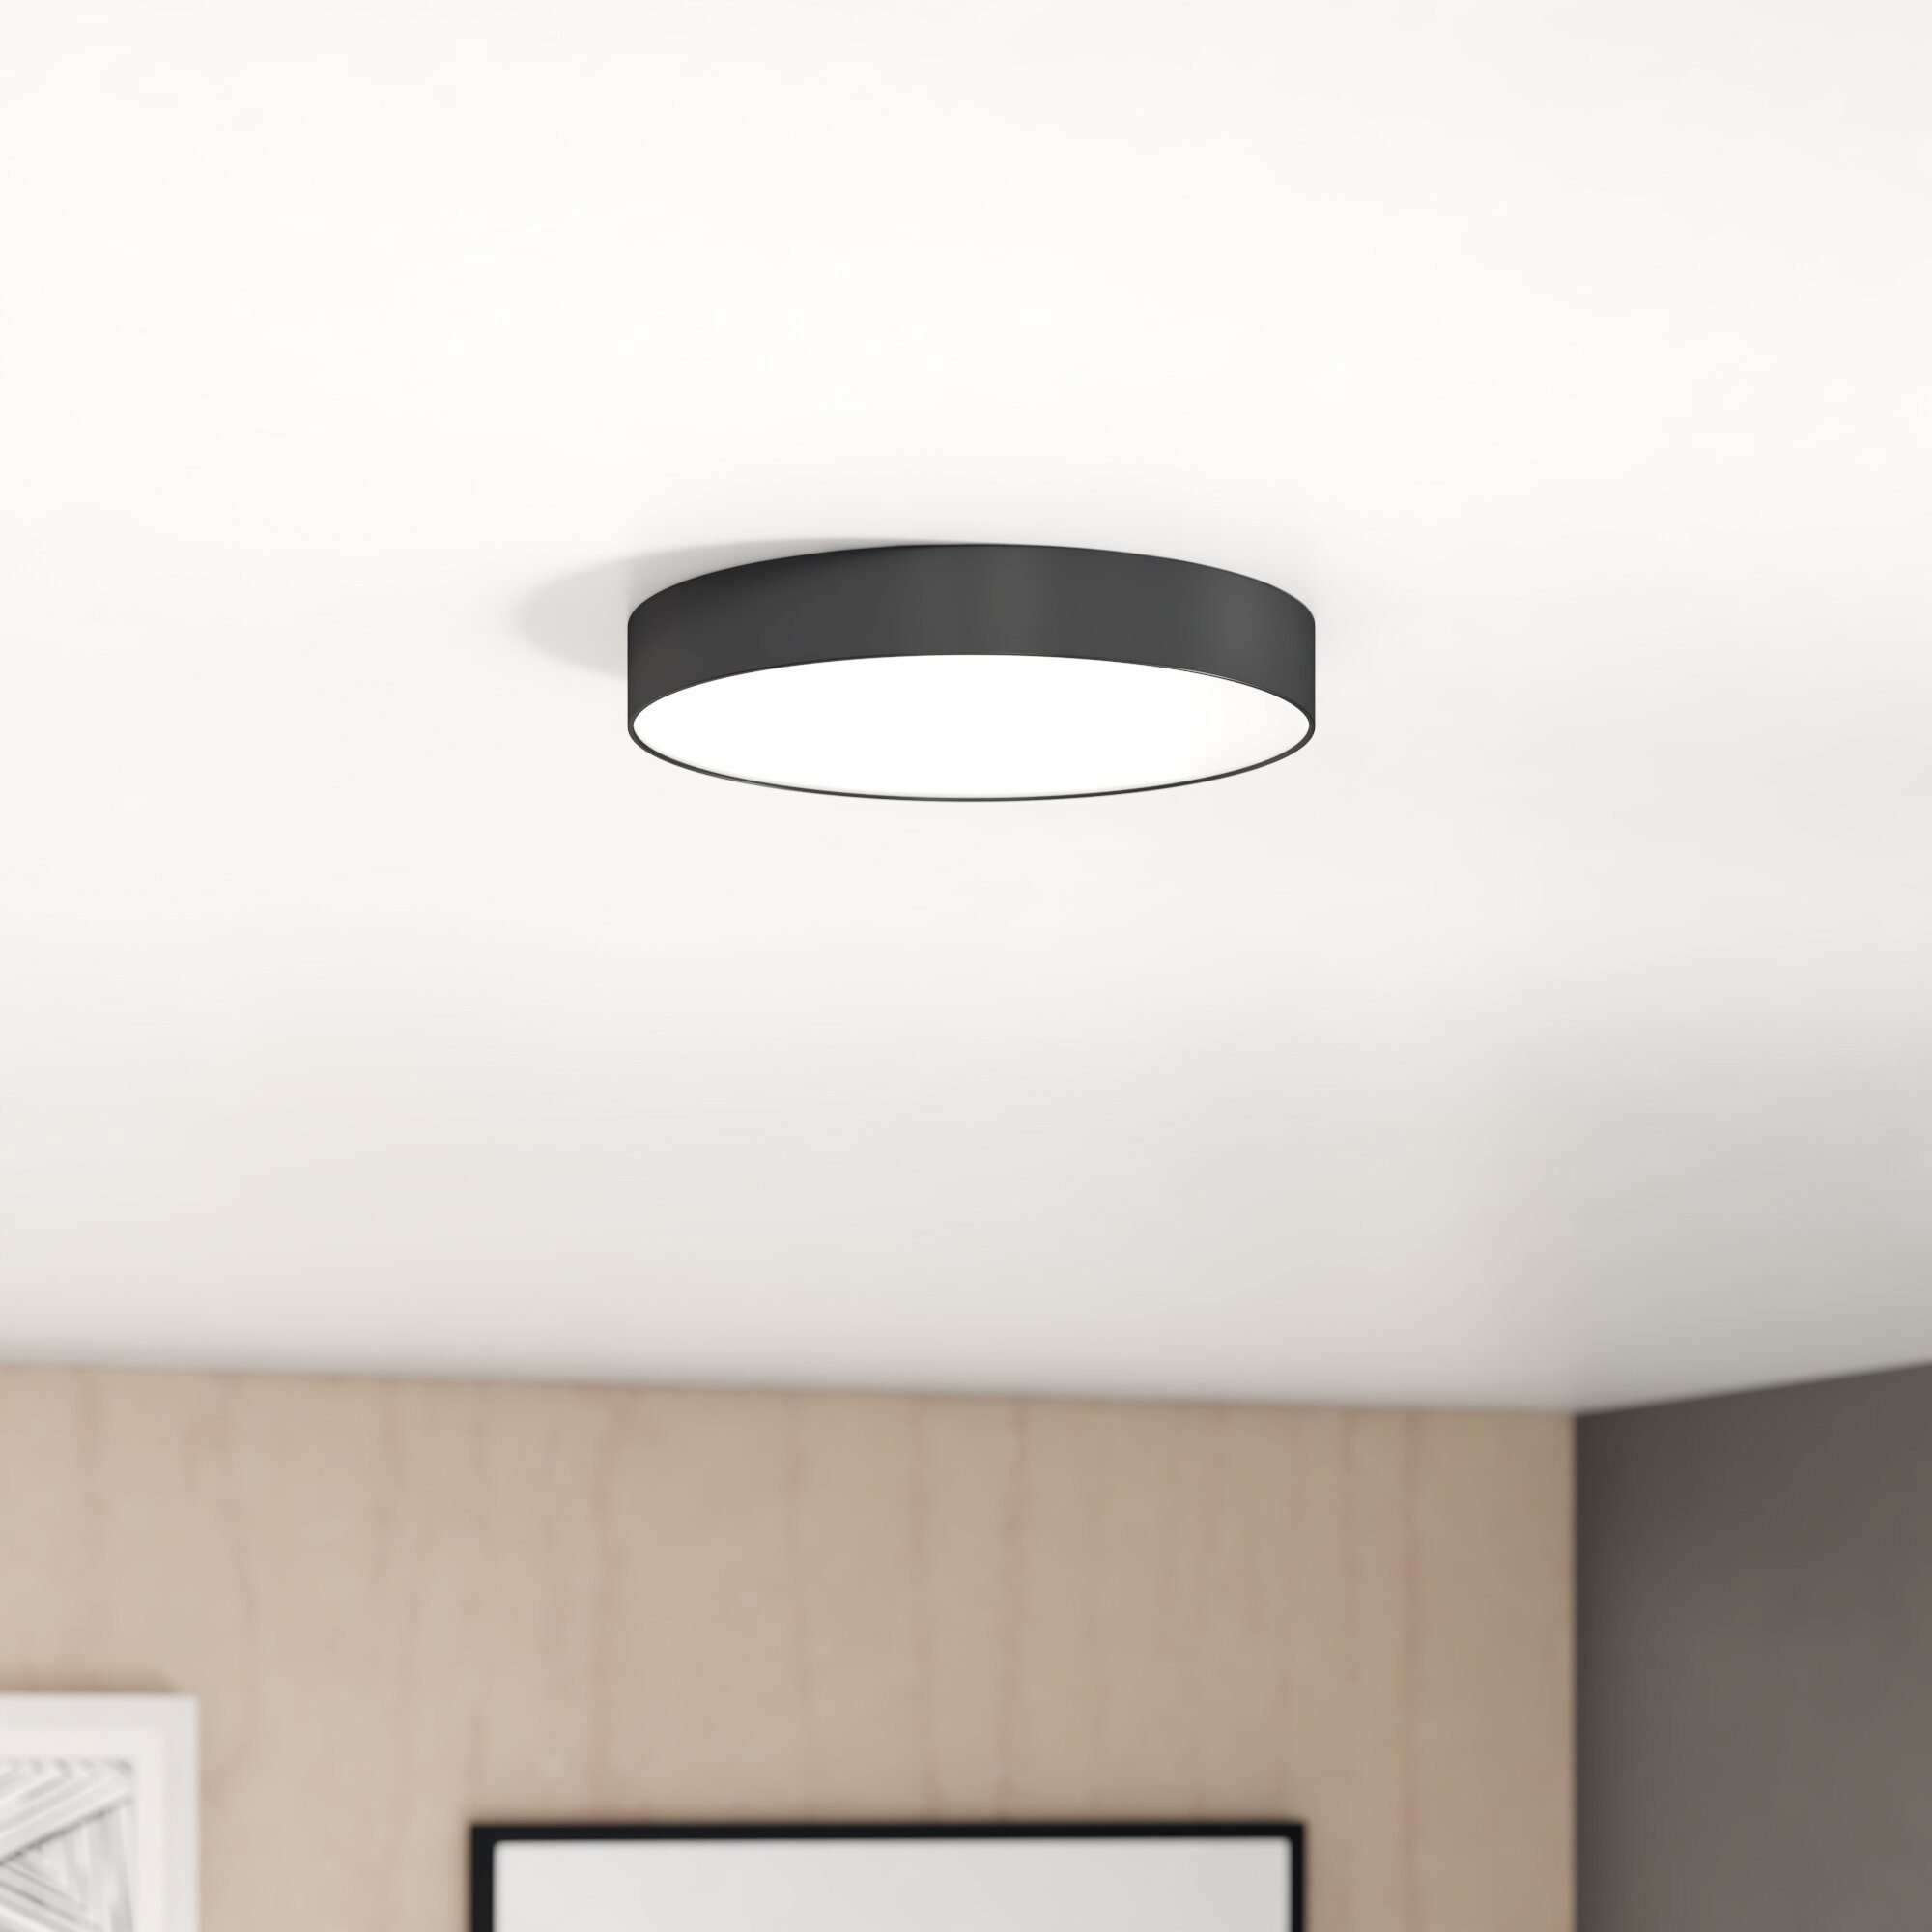 Warrenton 1 Simple Circle LED dimmable light for the closet